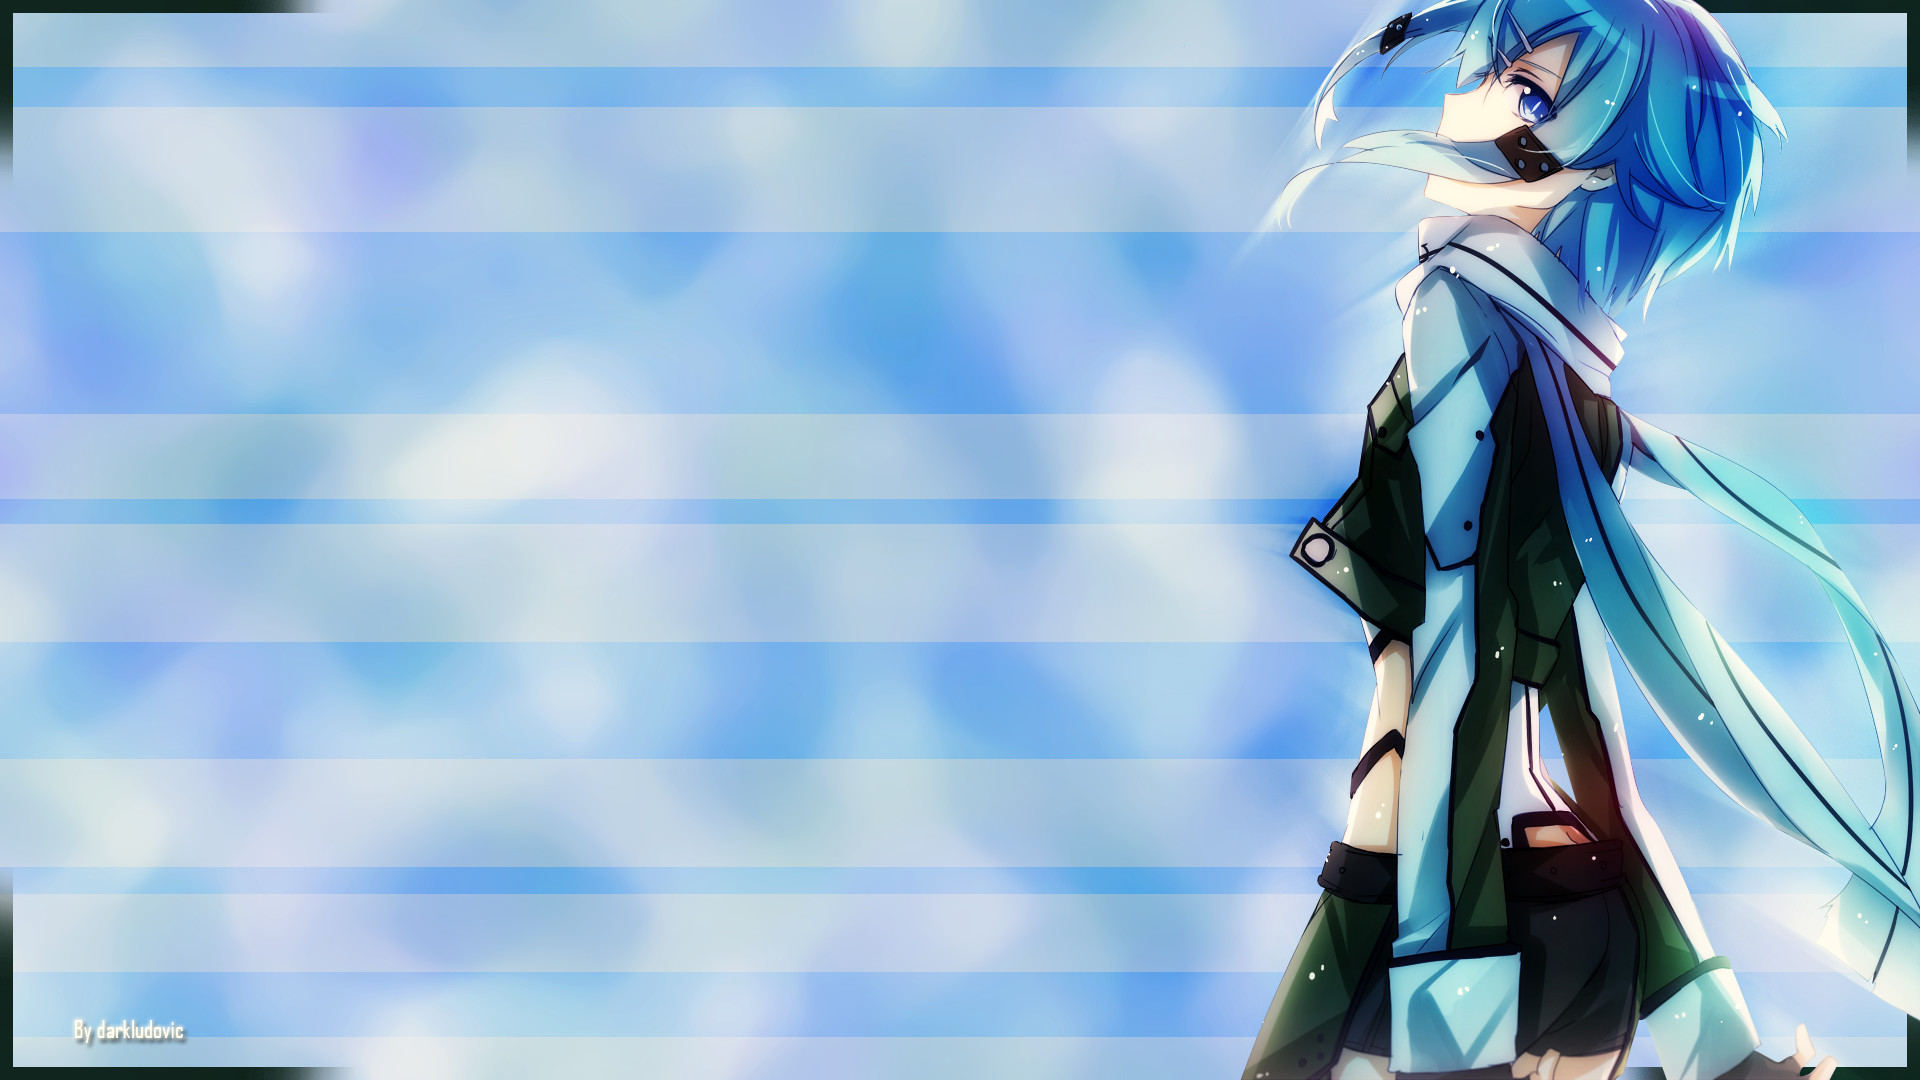 1920x1080 Sinon-Gun-Gale-Online-SAO-Background-Wallpapers.png